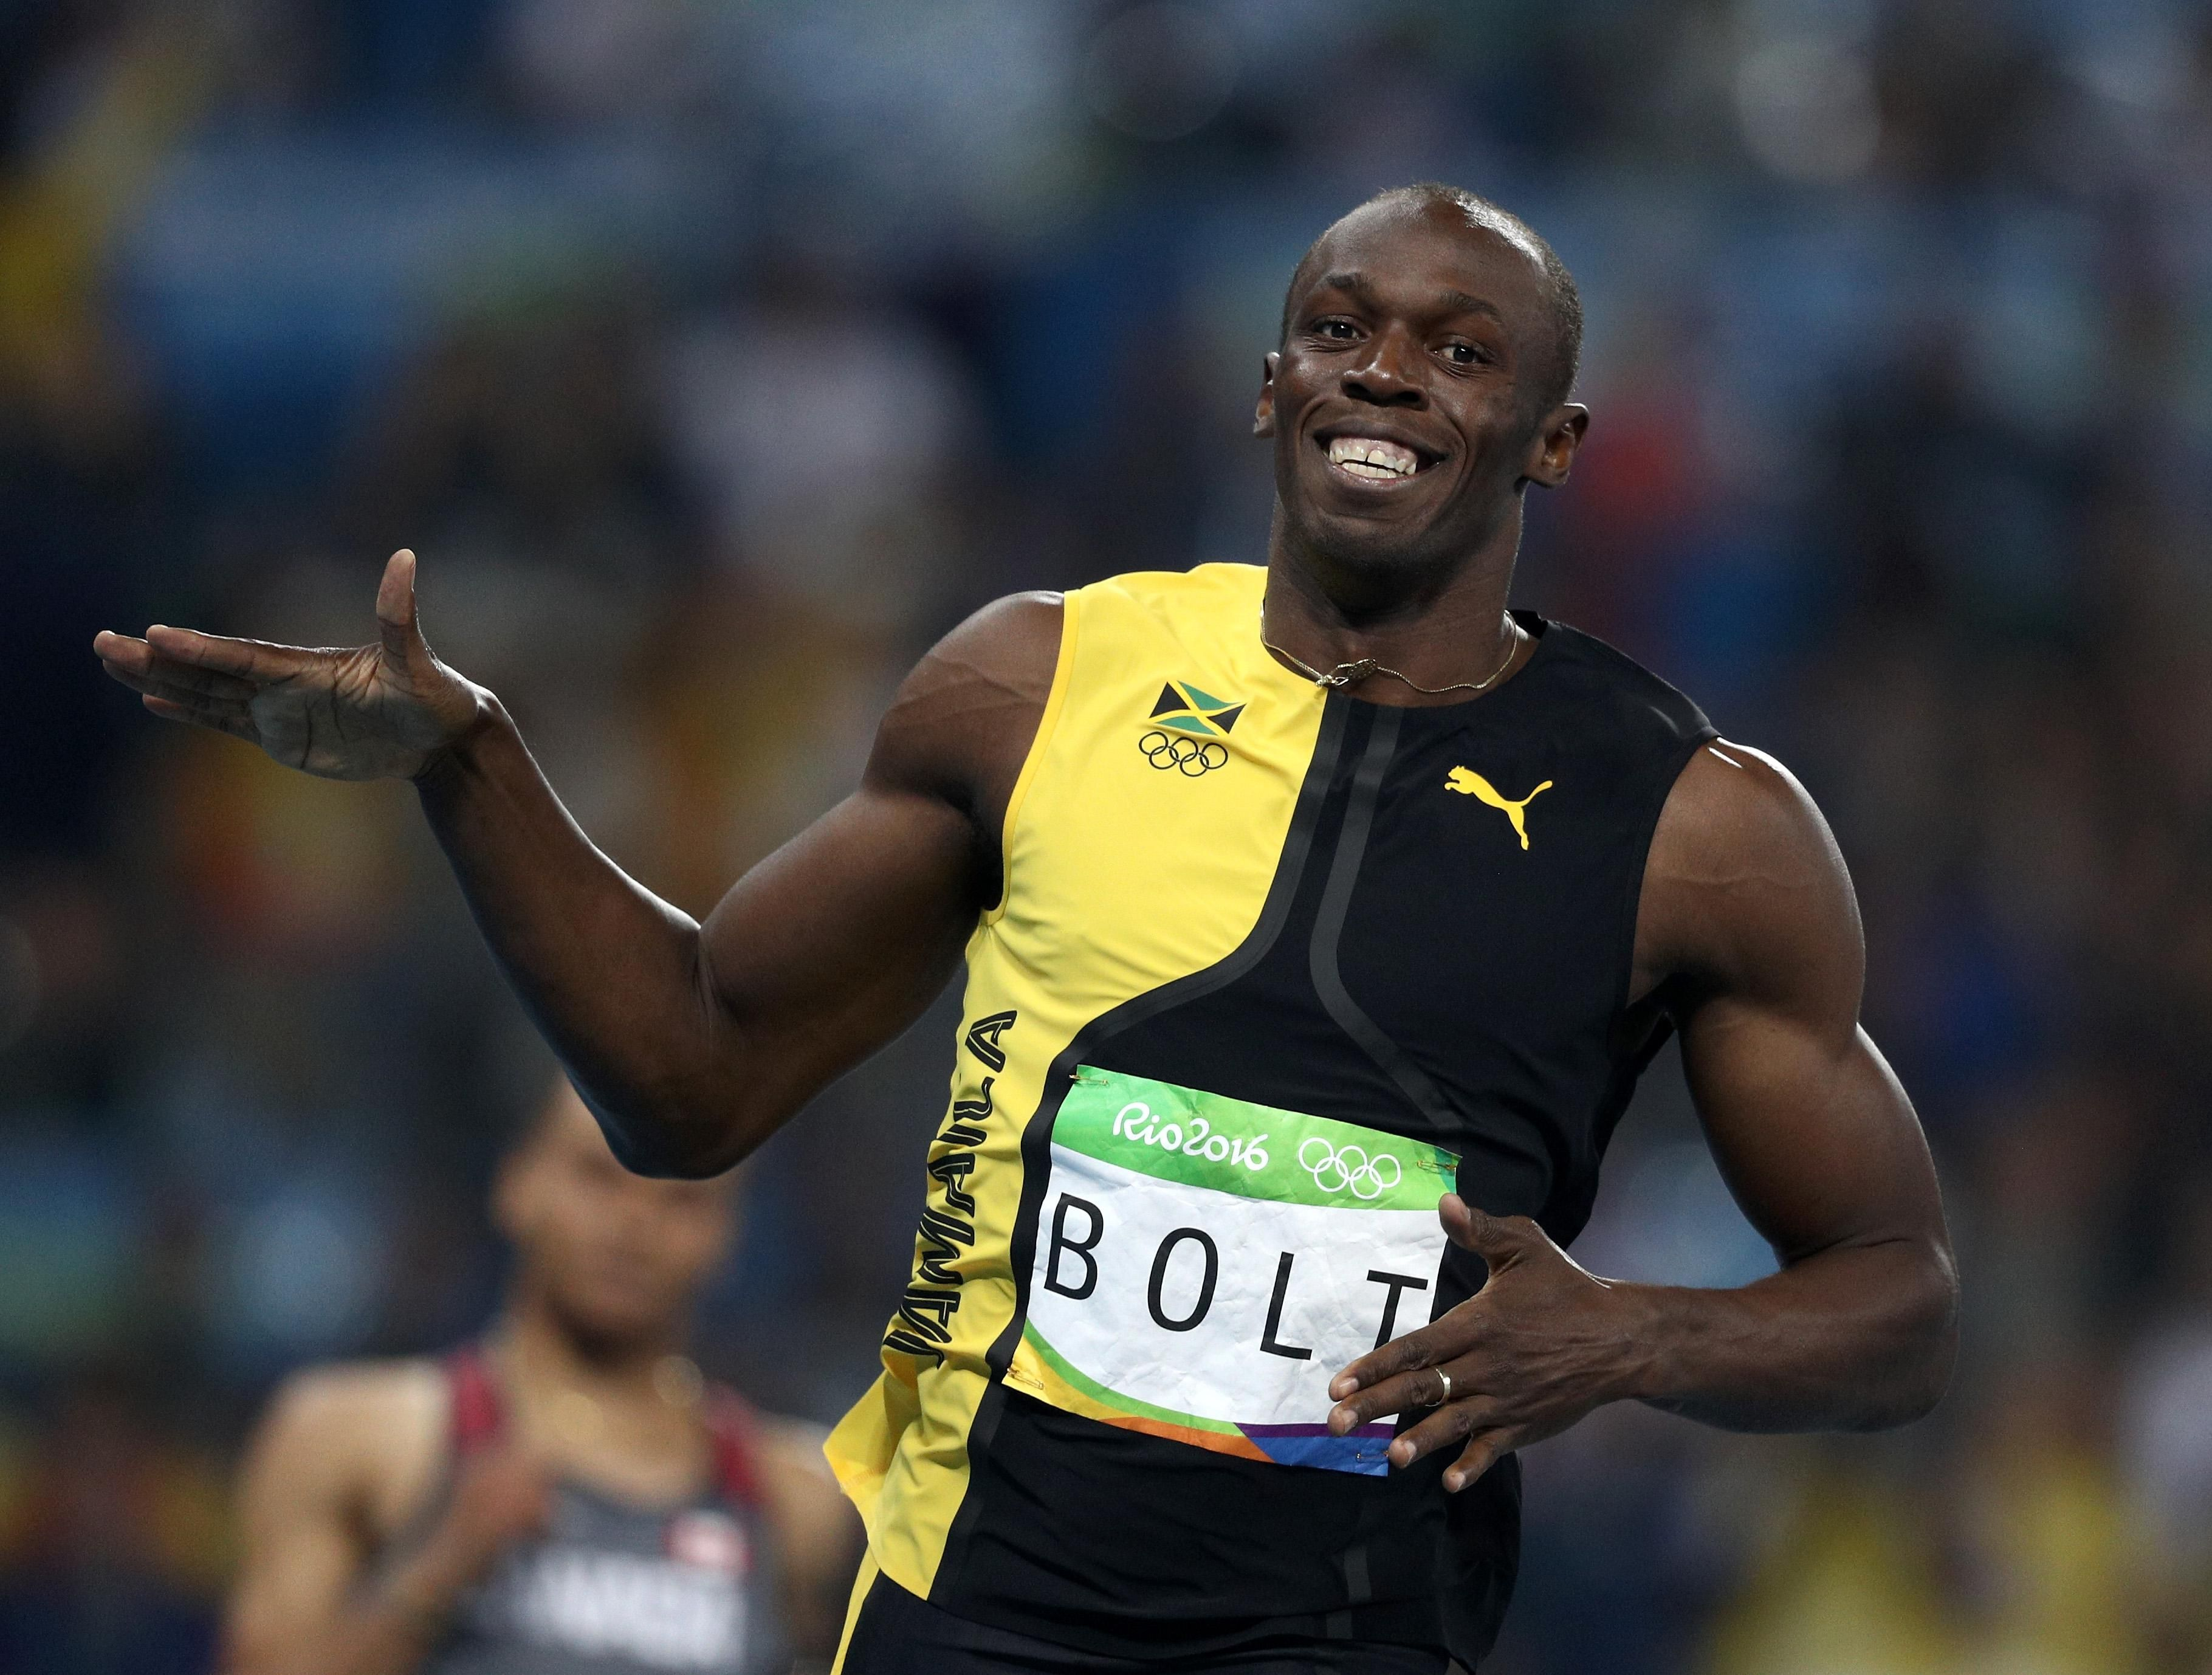 Usain Bolt Defends Title as World's Fastest Man in Rio ...